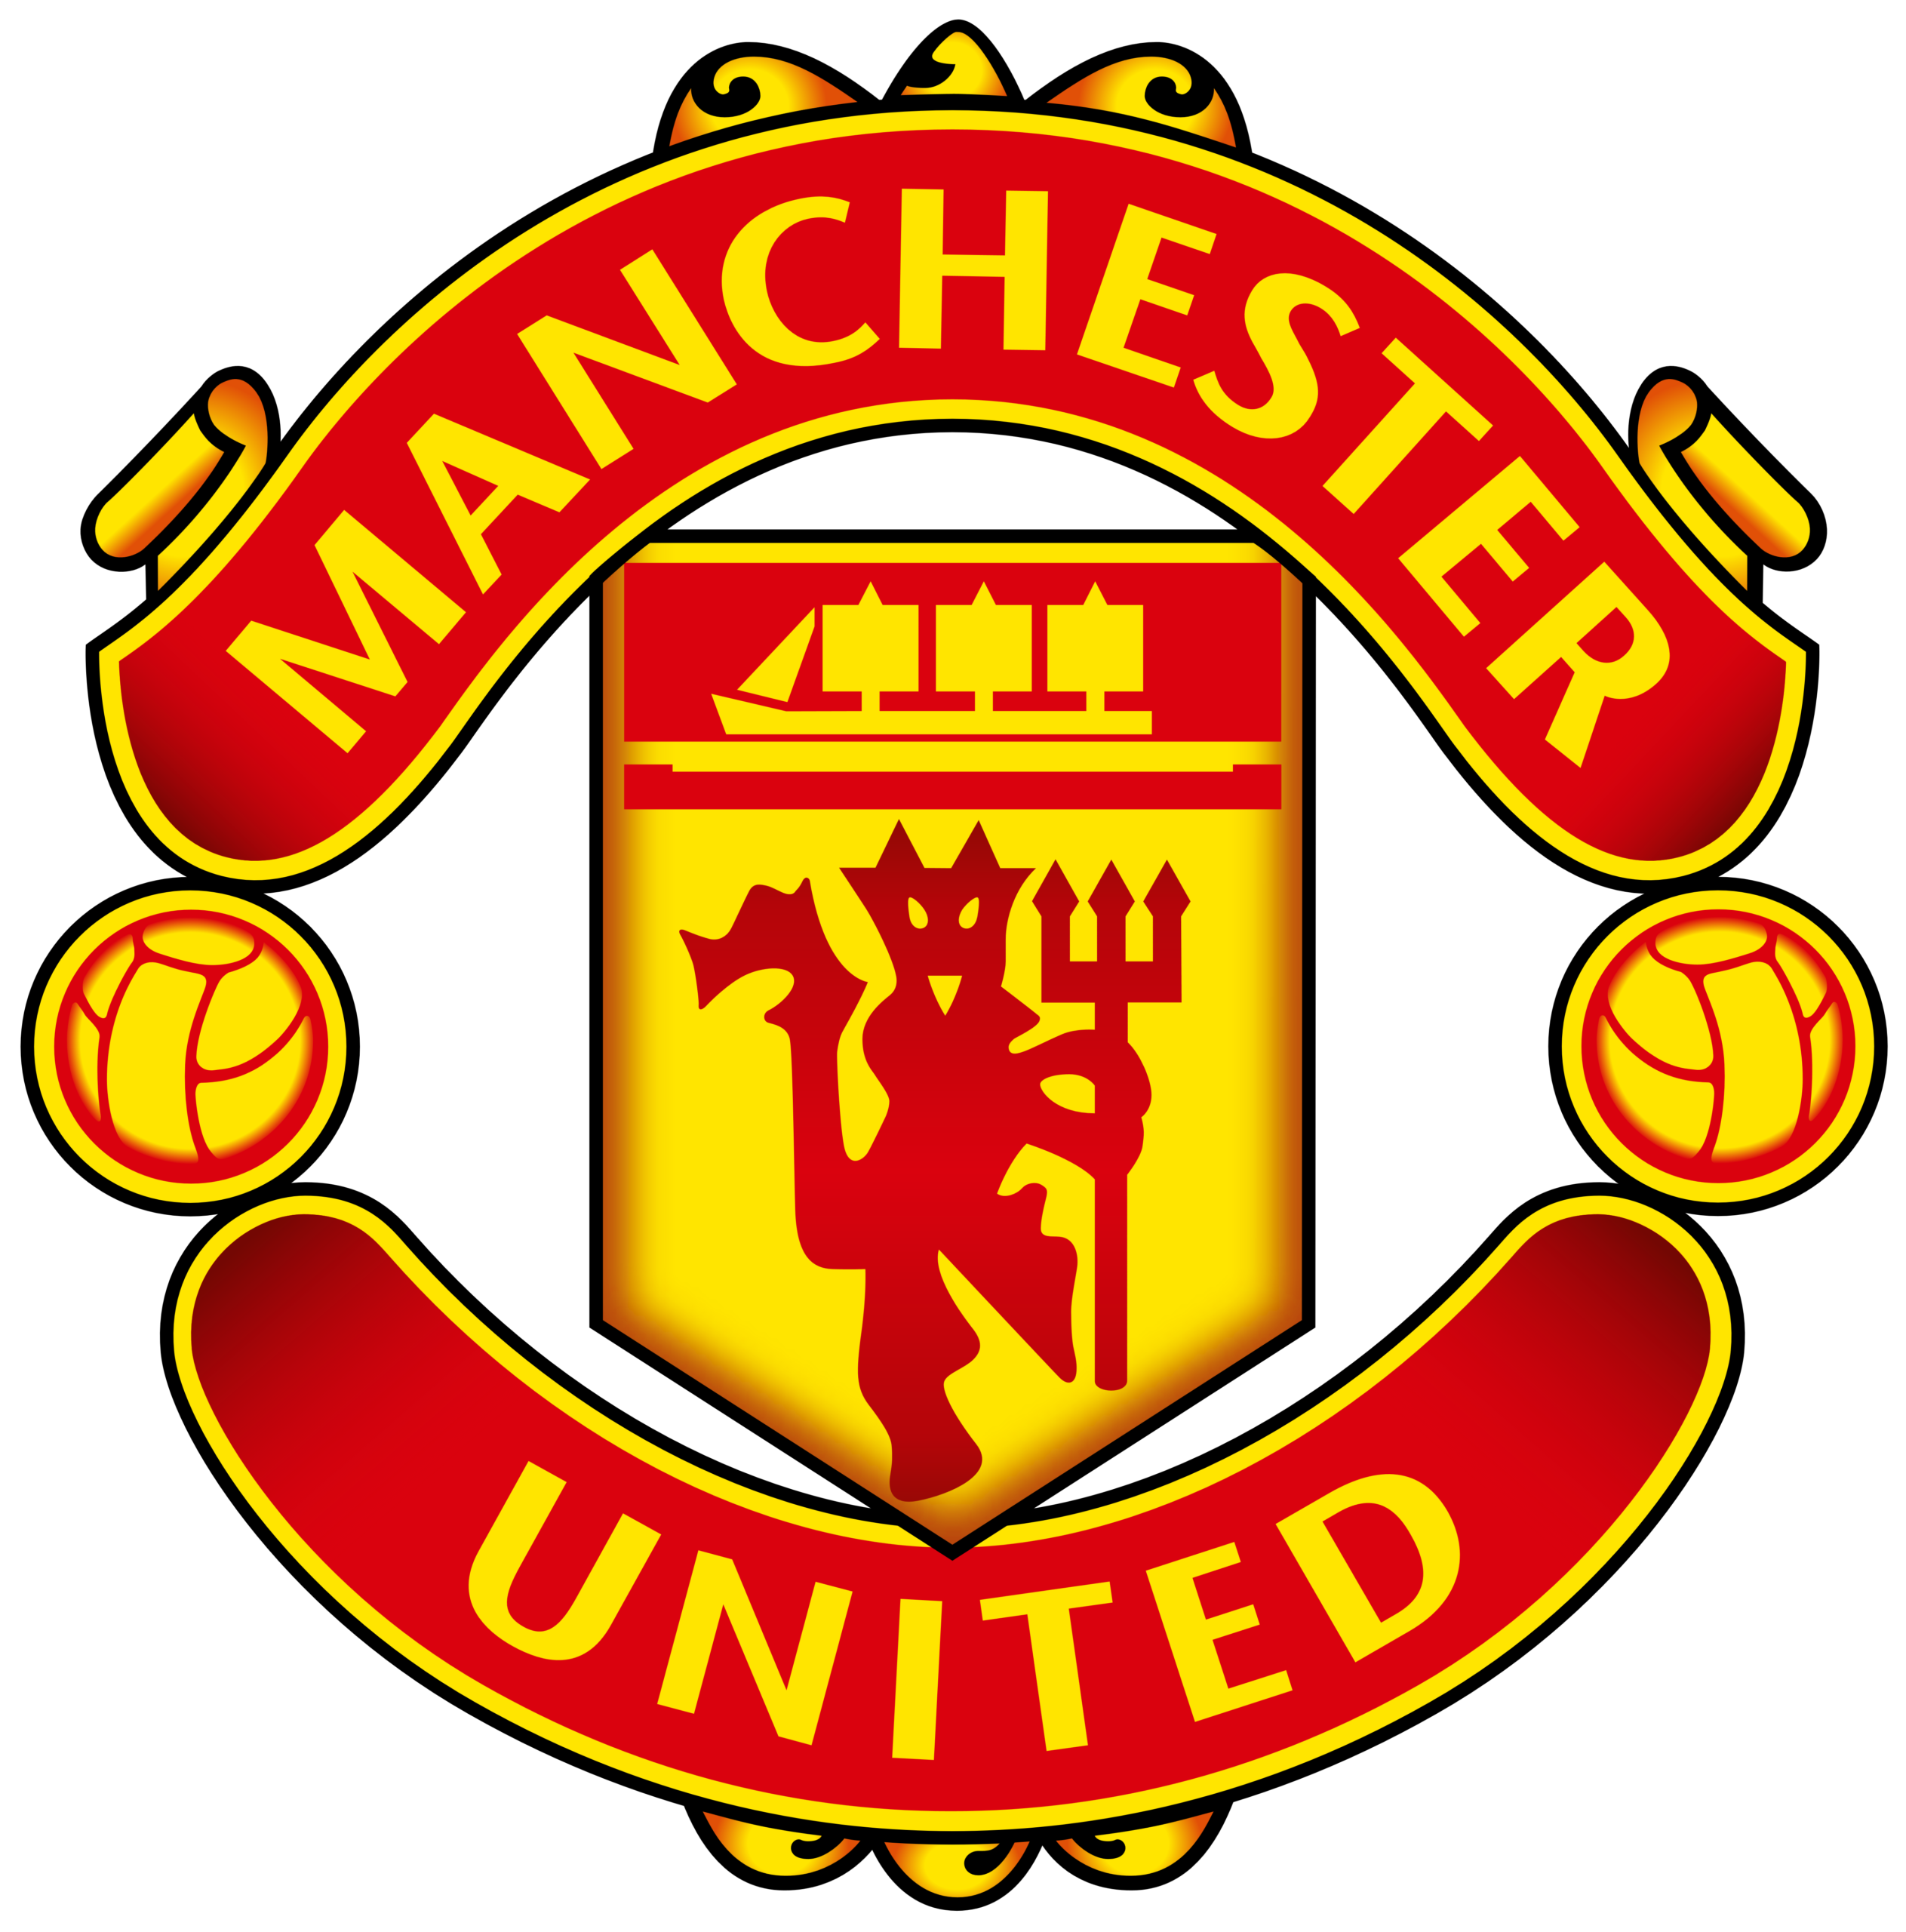 fManchester United